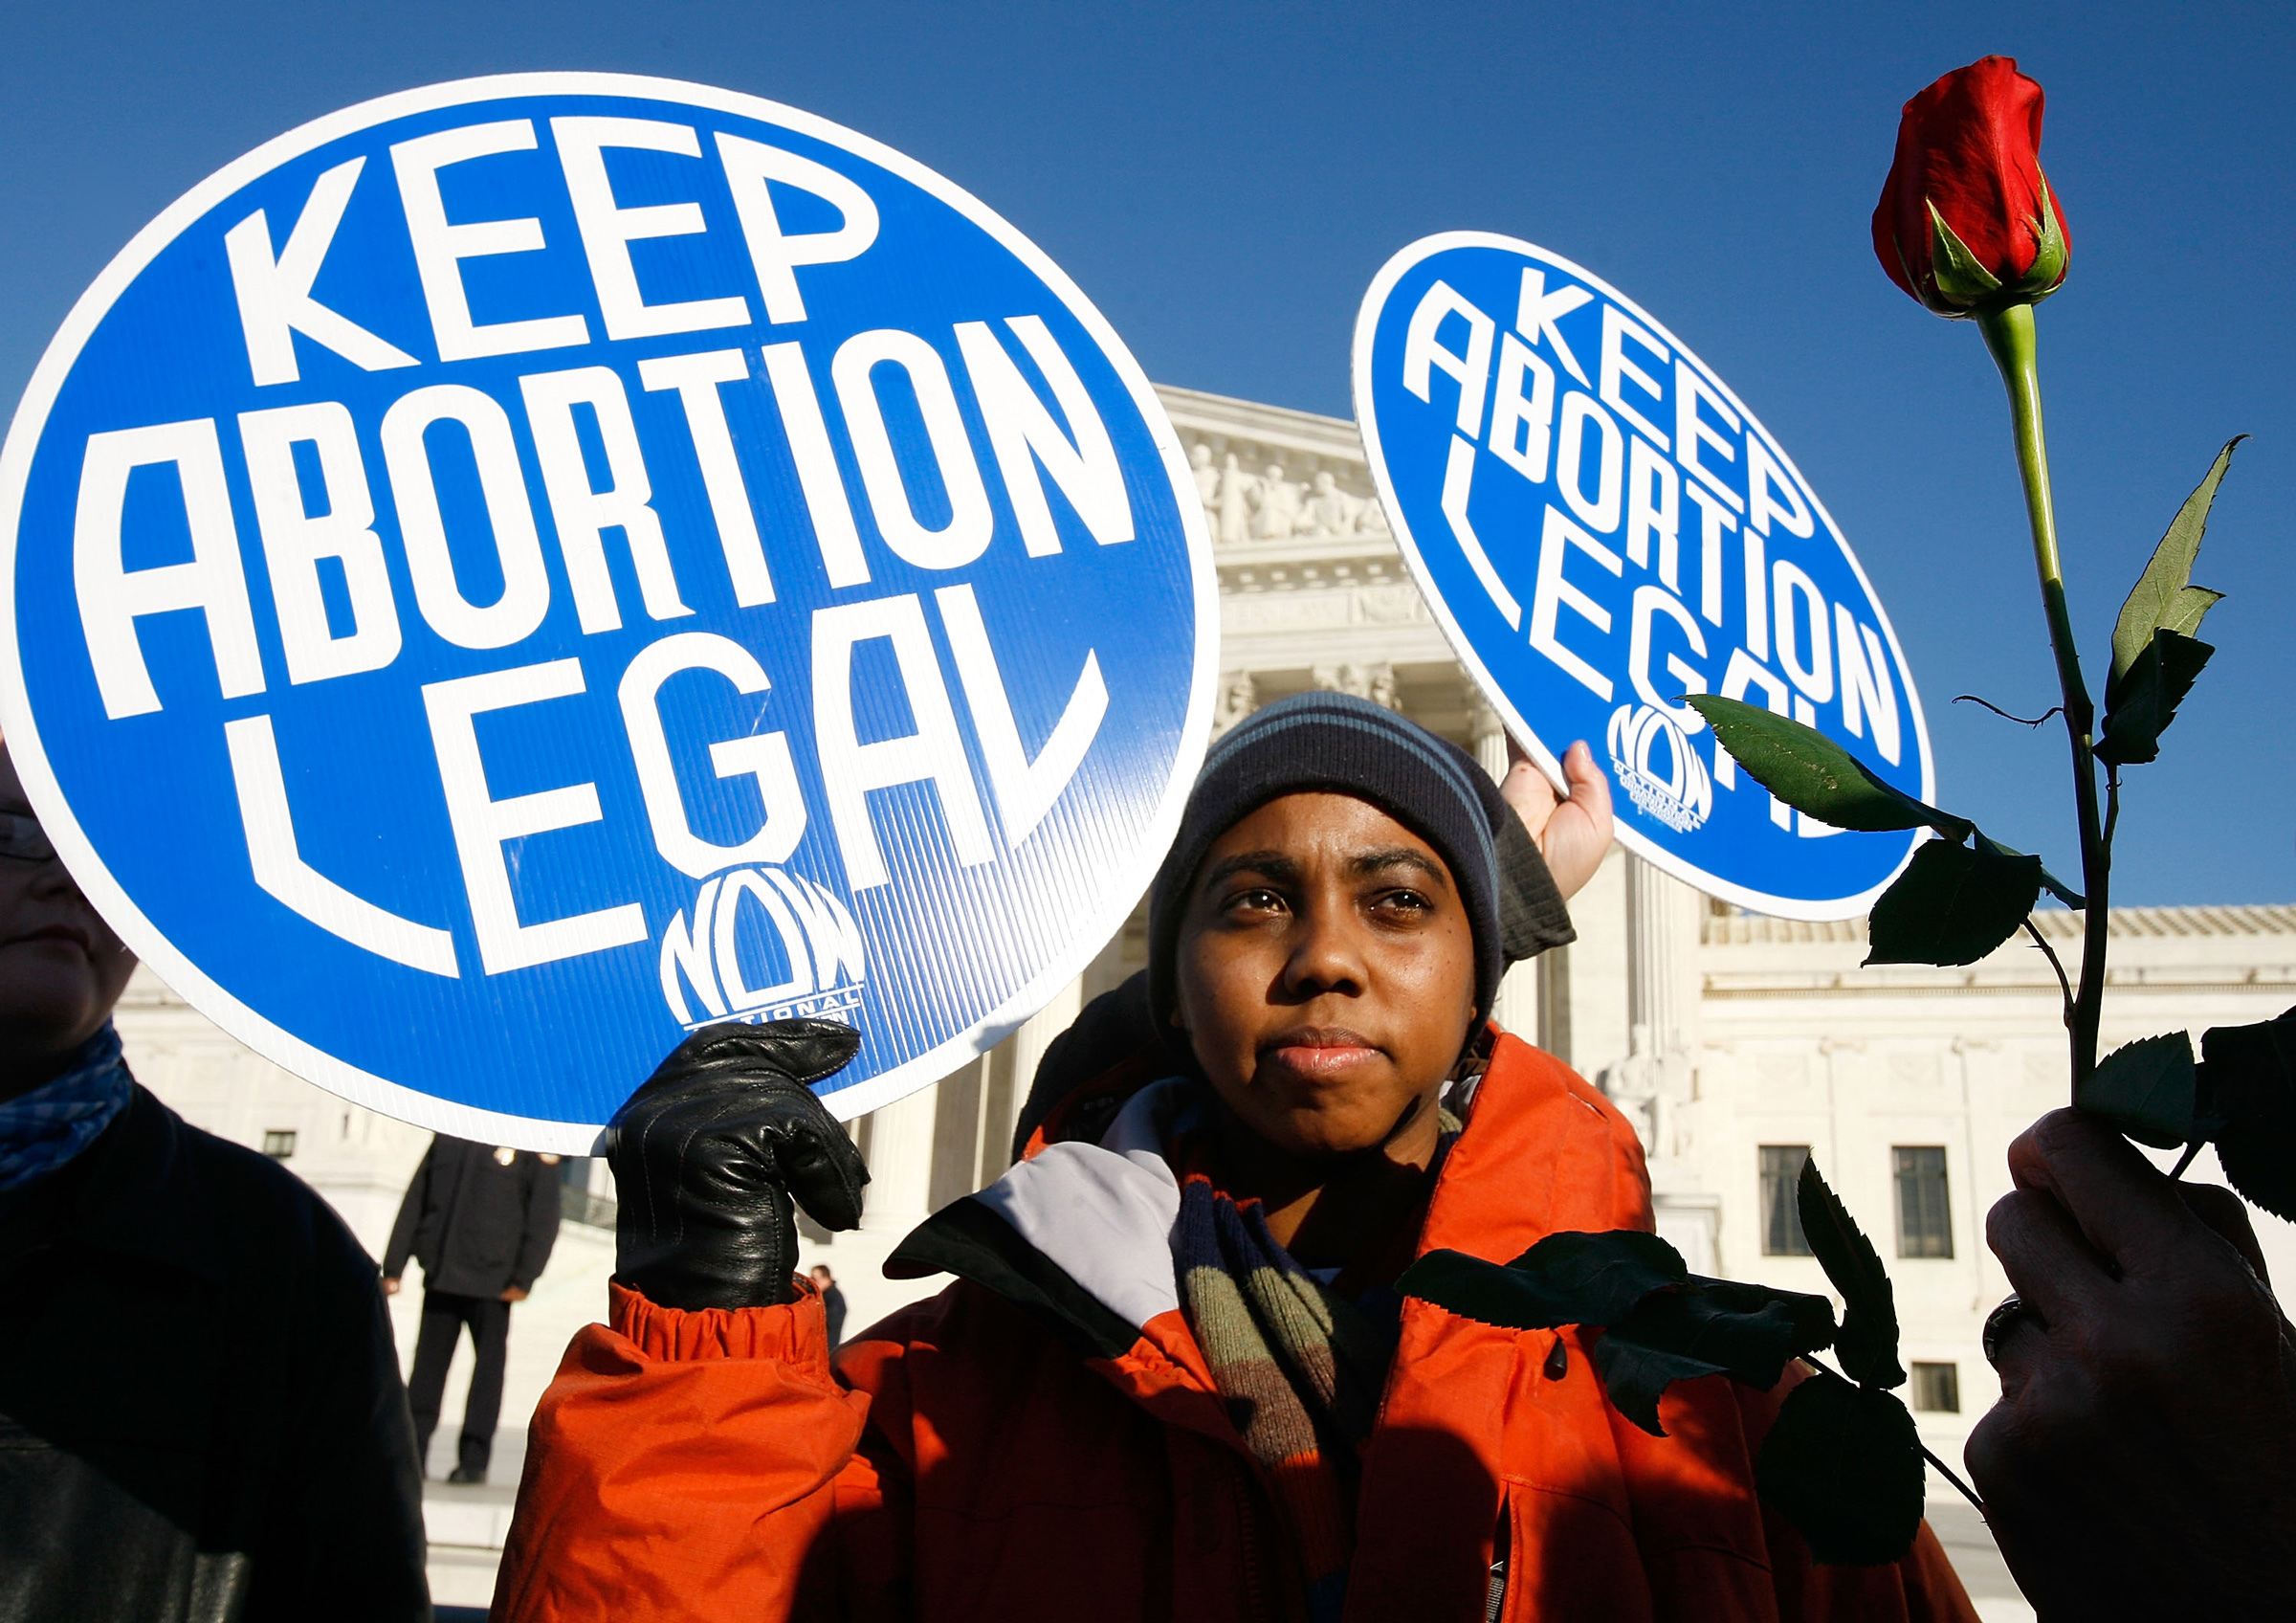 a Black person wearing all blue holds a blue Keep Abortion Legal sign in front of a stone building